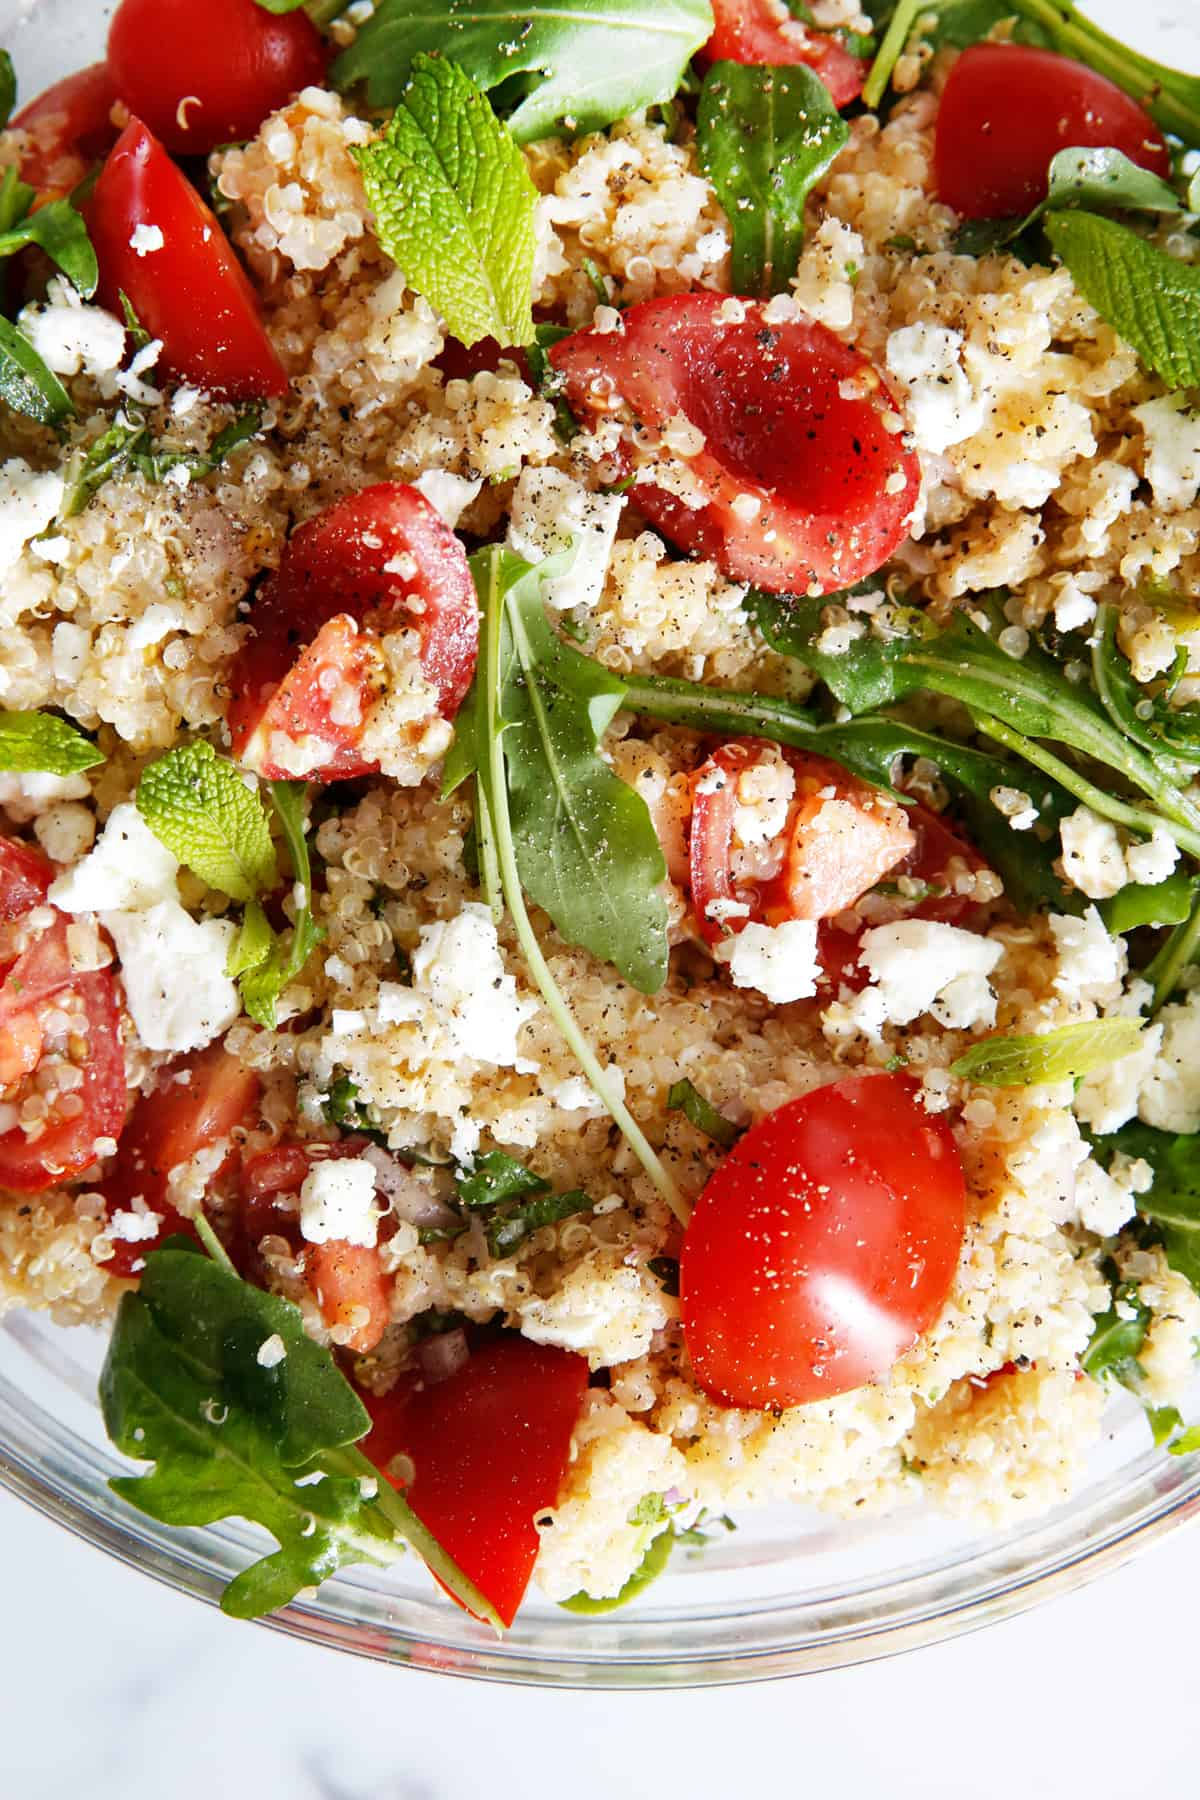 Mediterranean Quinoa Salad recipe in a bowl